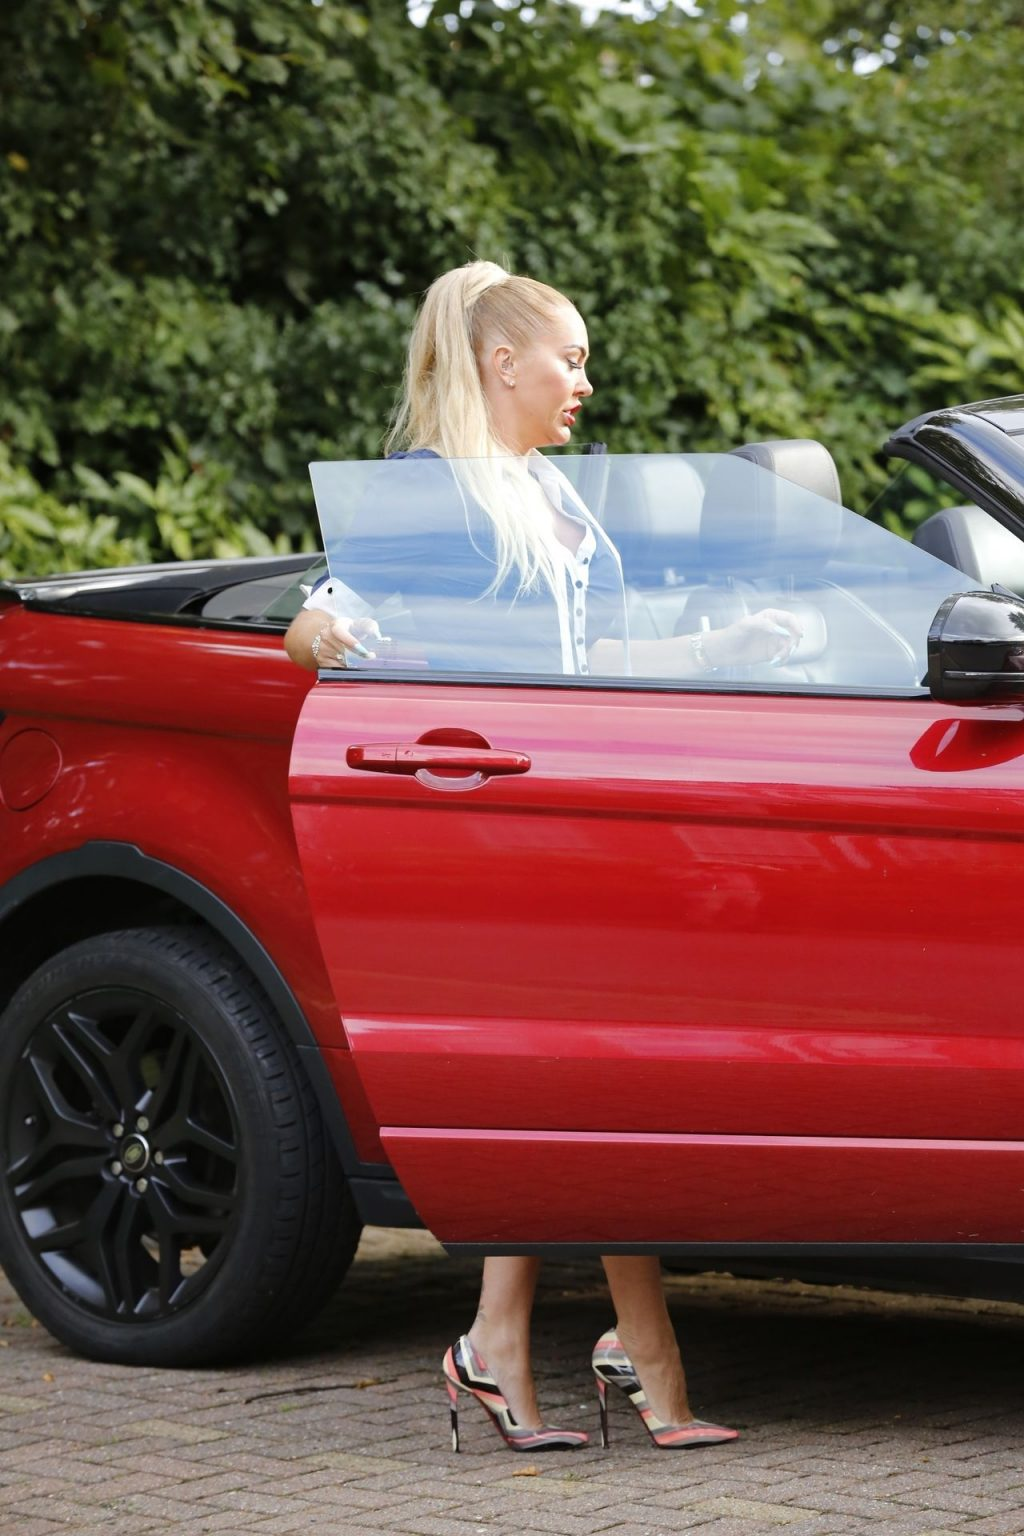 Aisleyne Horgan-Wallace Has a Incident with Her Car in London (35 Photos)